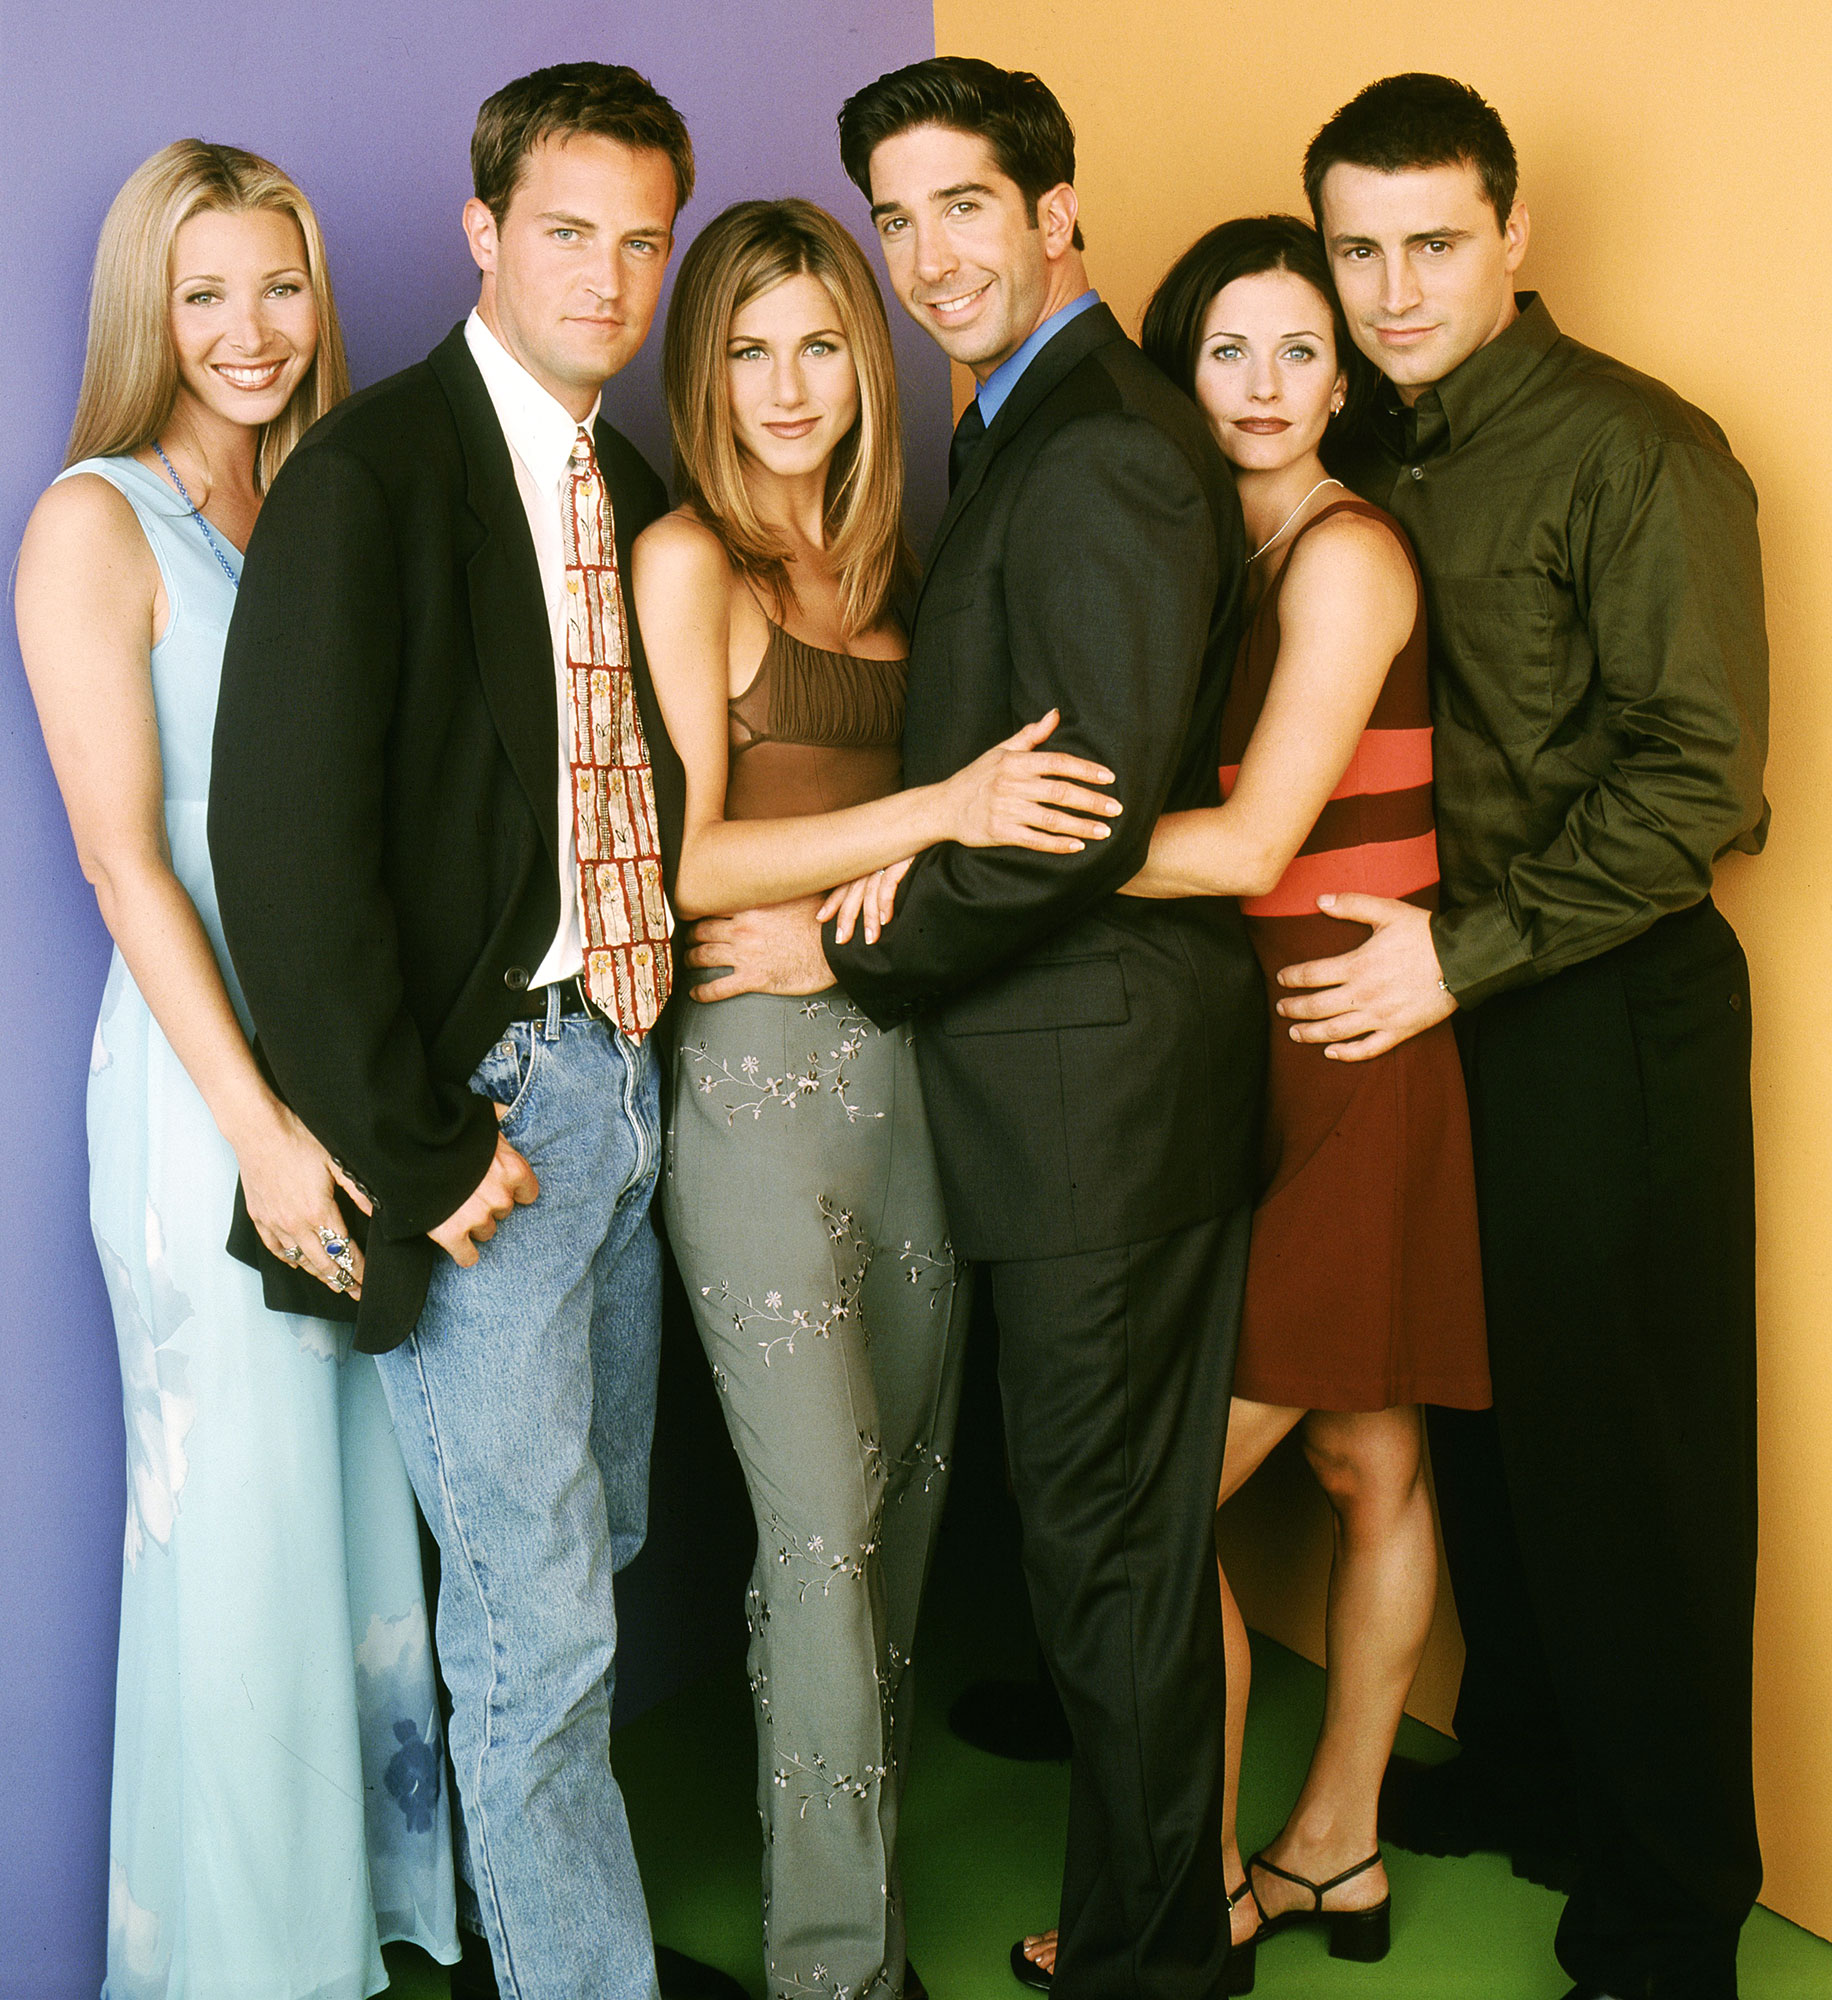 Friends' Reunion: Everything the Cast Has Said About HBO Max Special